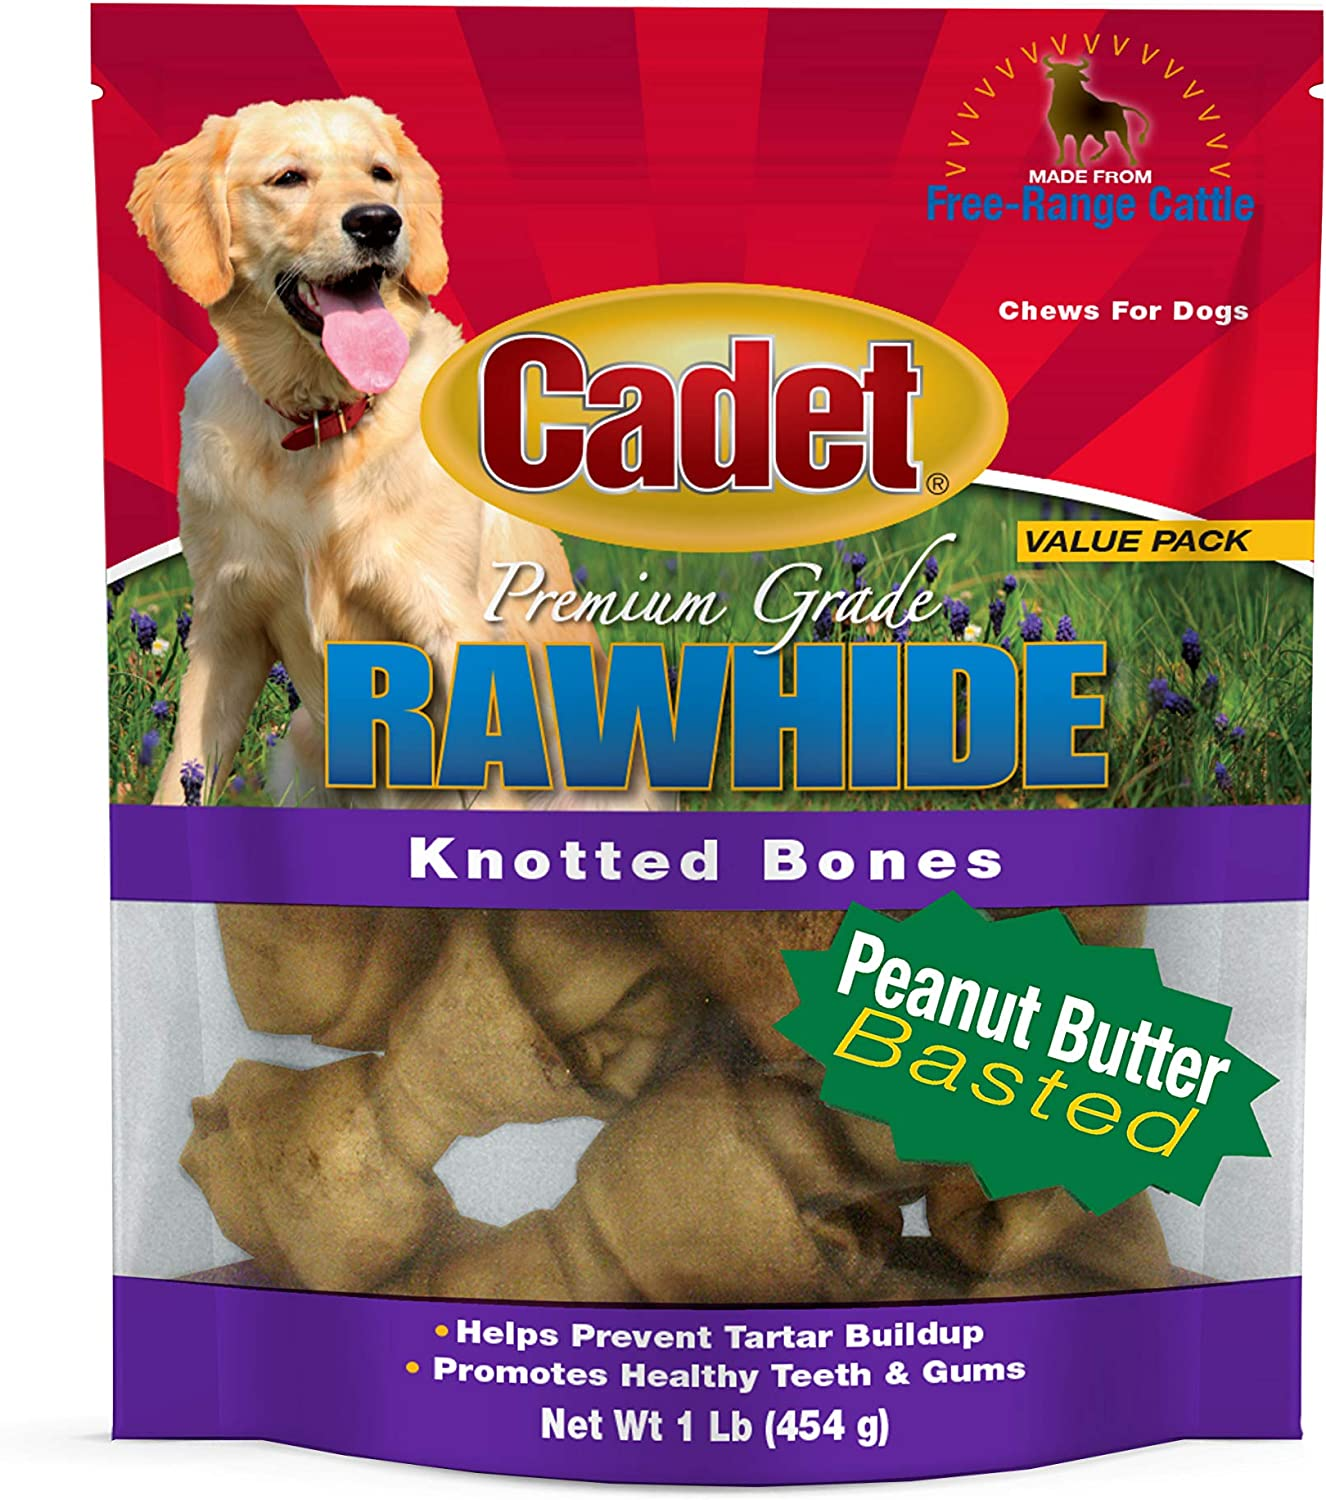 634316 Rawhide Knotted Bone Value Pack Peanut Butter, 1 lb, 1Piece